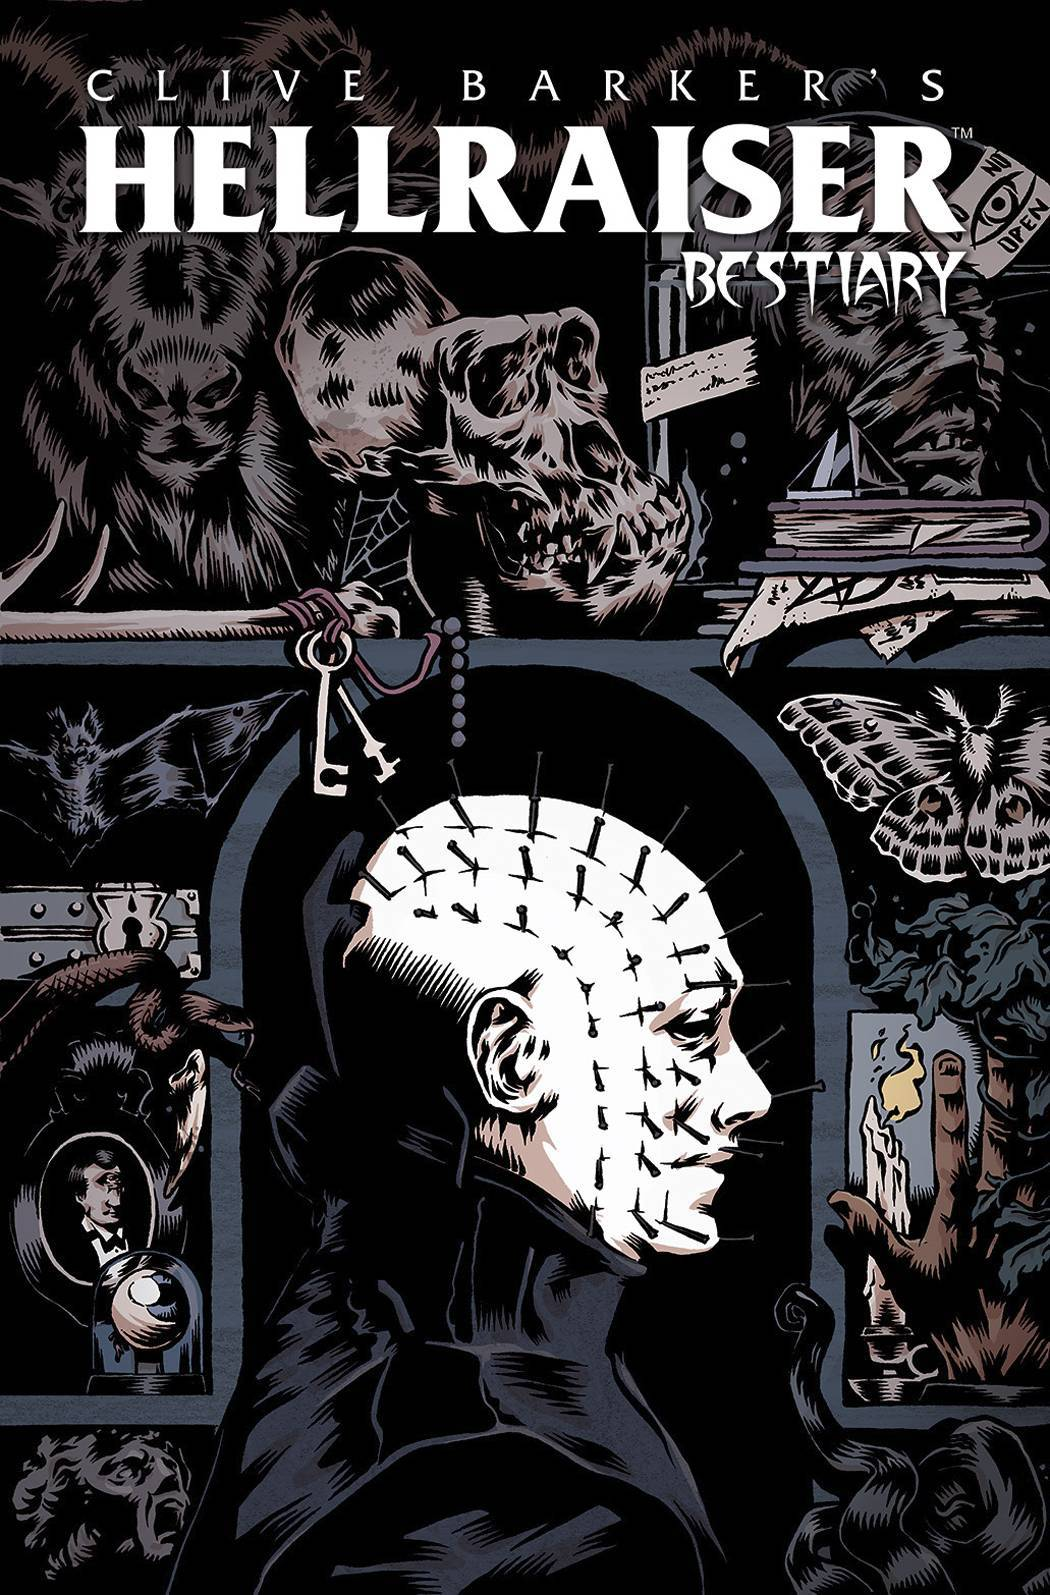 Comic Book Review: Hellraiser – Bestiary